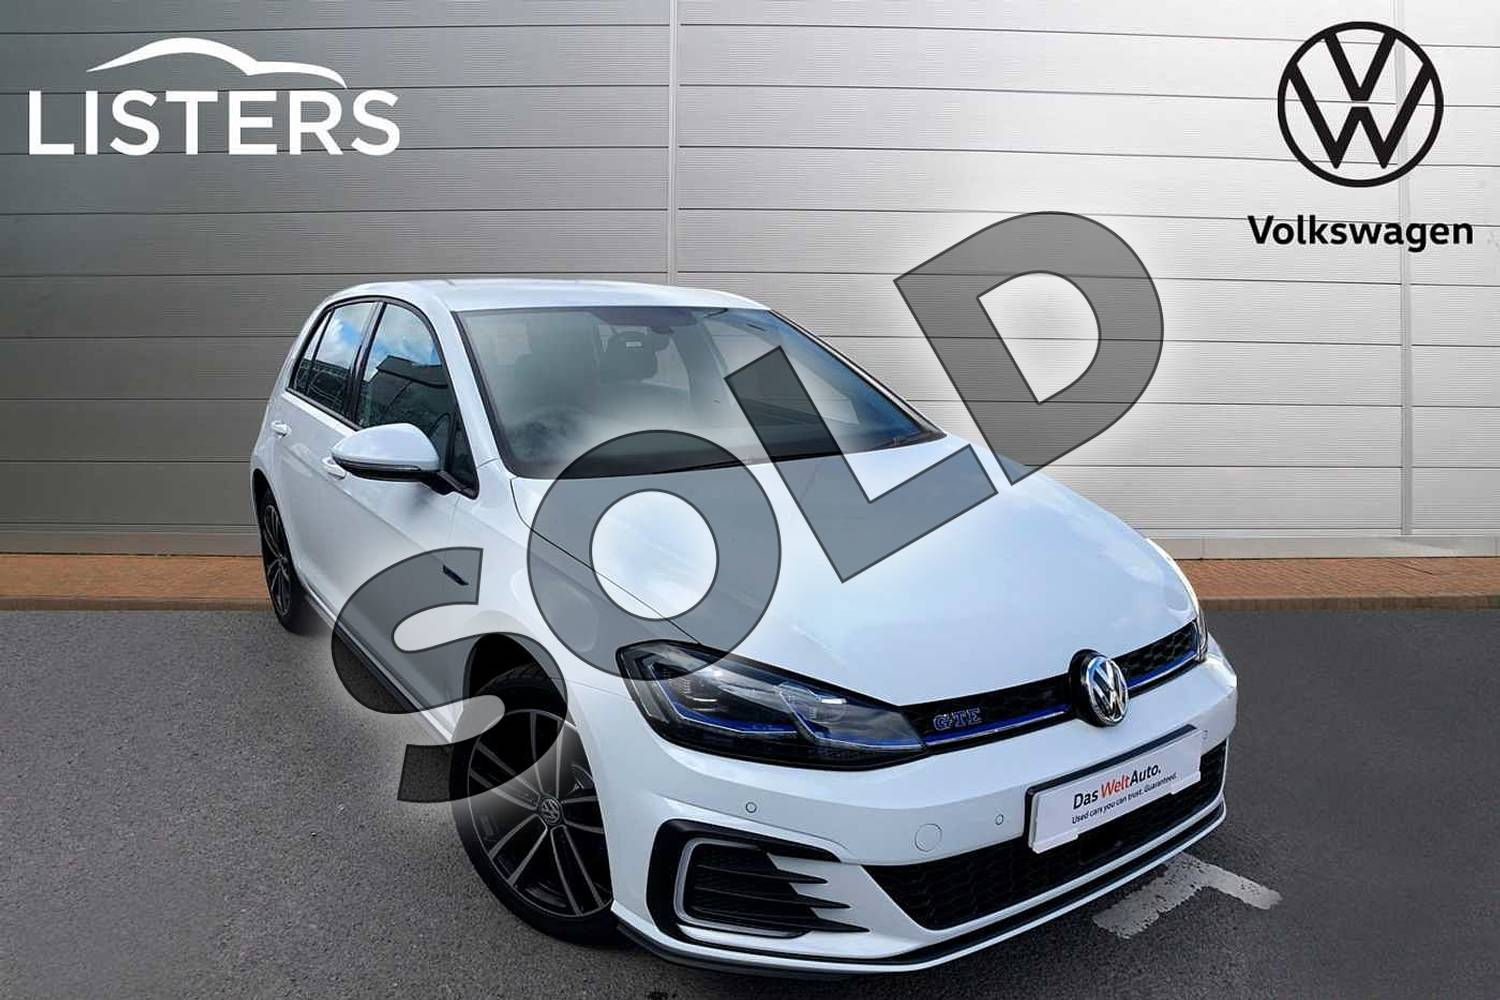 Volkswagen Golf 1 4 Tsi Gte 5dr Dsg For Sale At Listers